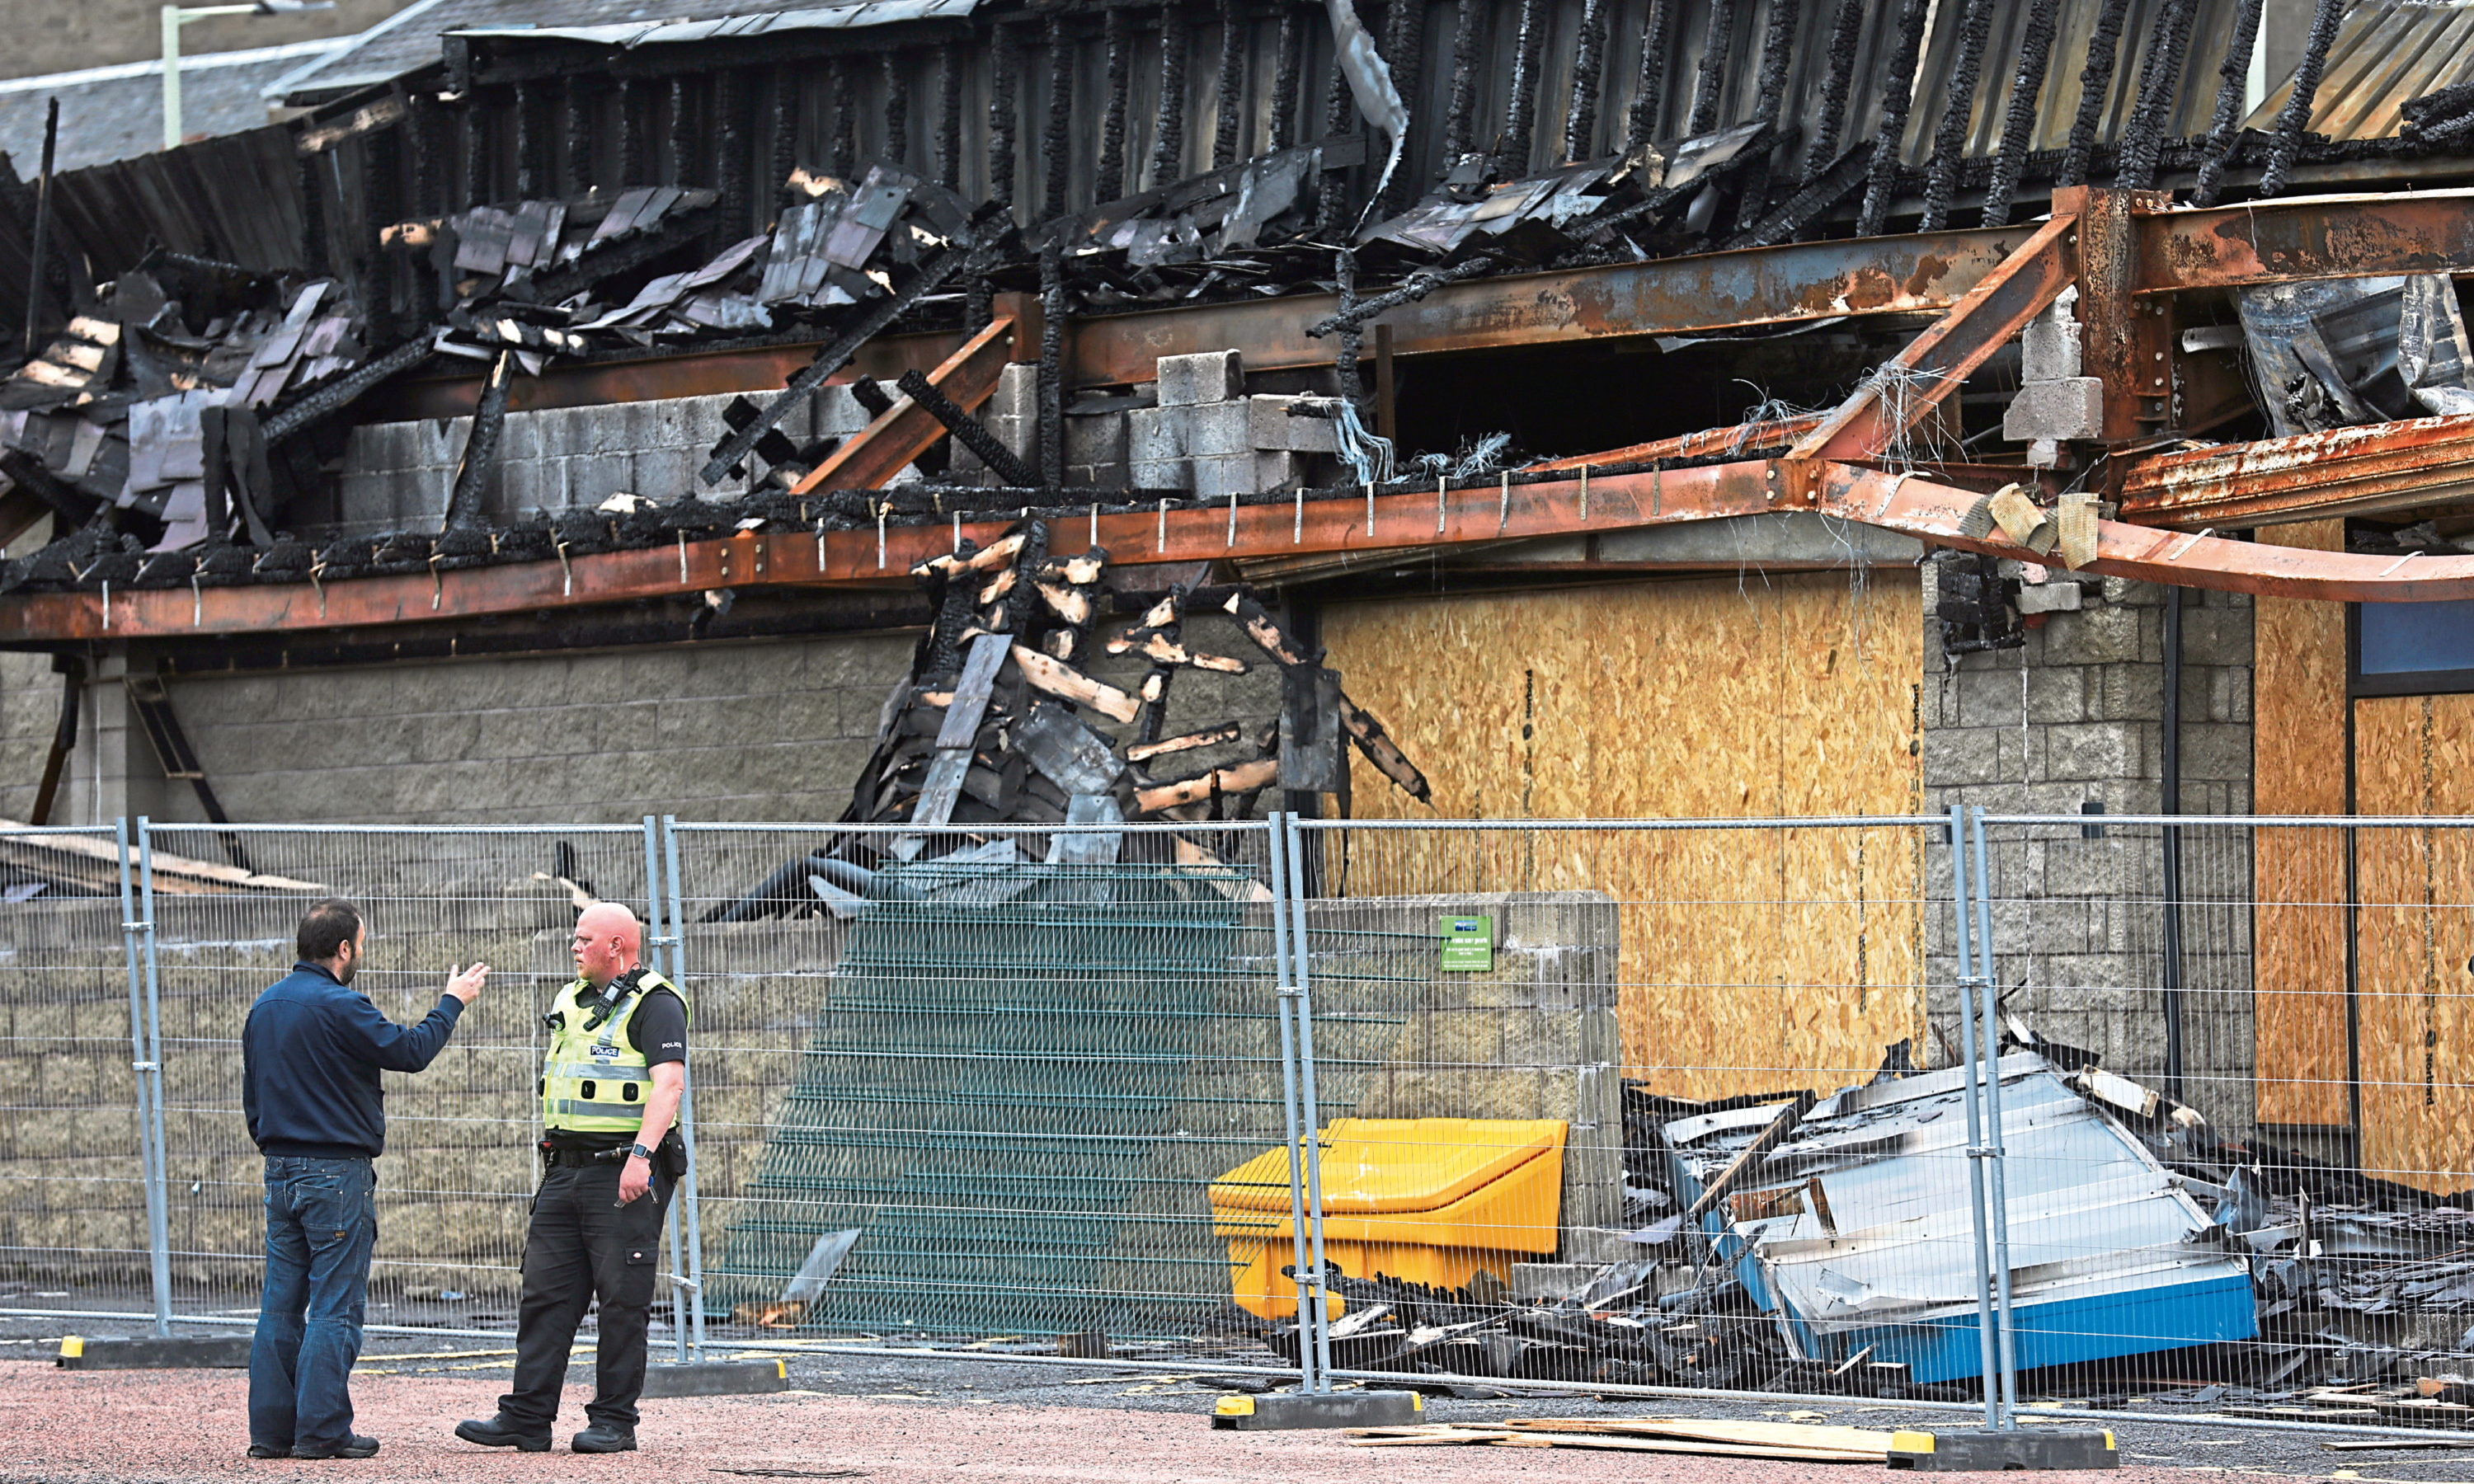 The building was destroyed by a fire in September last year.